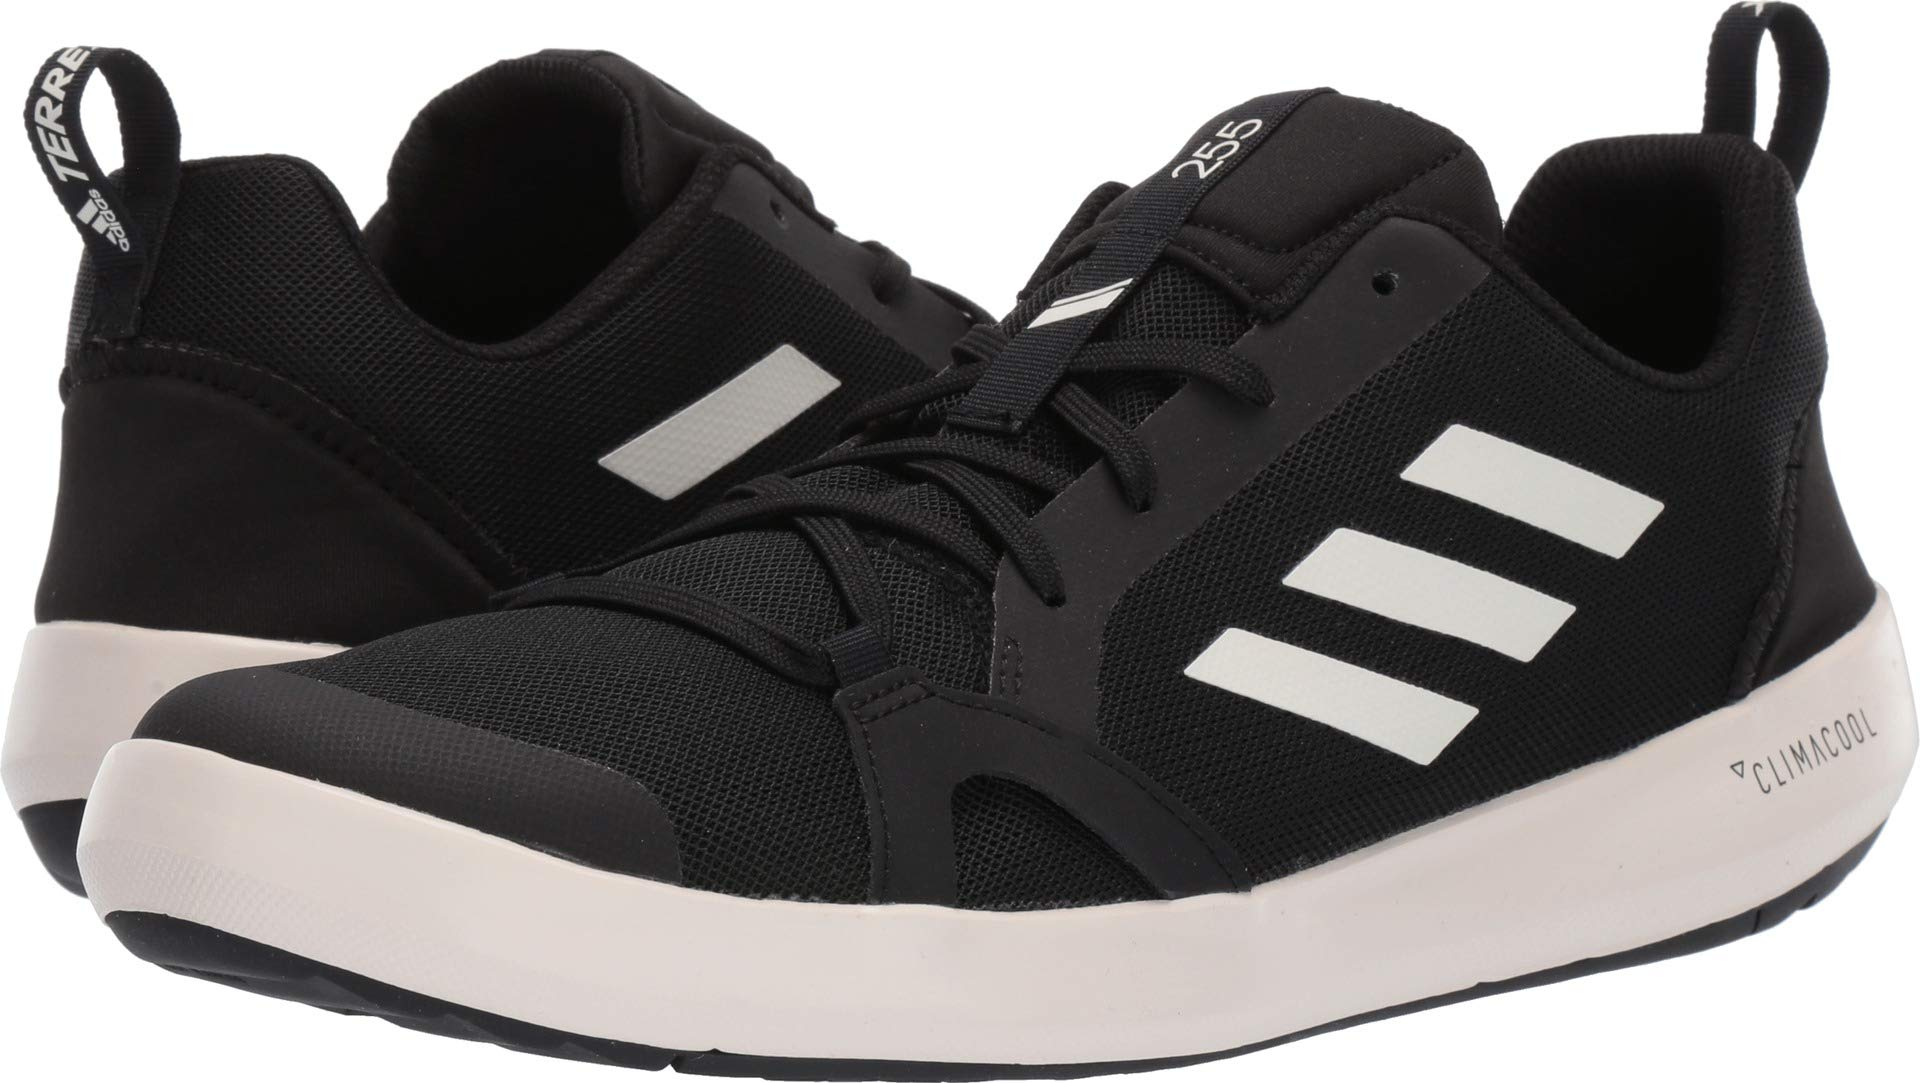 adidas outdoor Terrex CC Boat Water Shoe - Men's Black/Chalk White/Black, 7.5